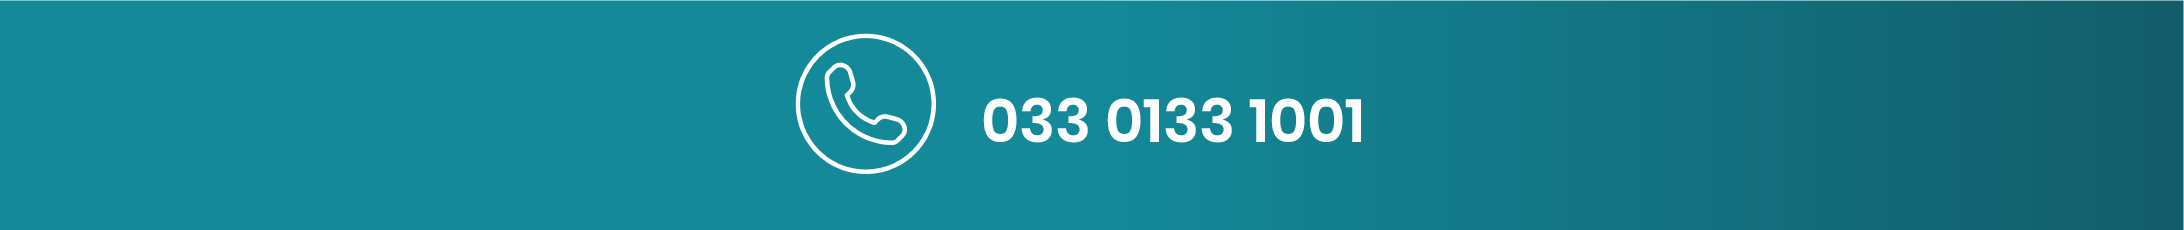 call footer-24